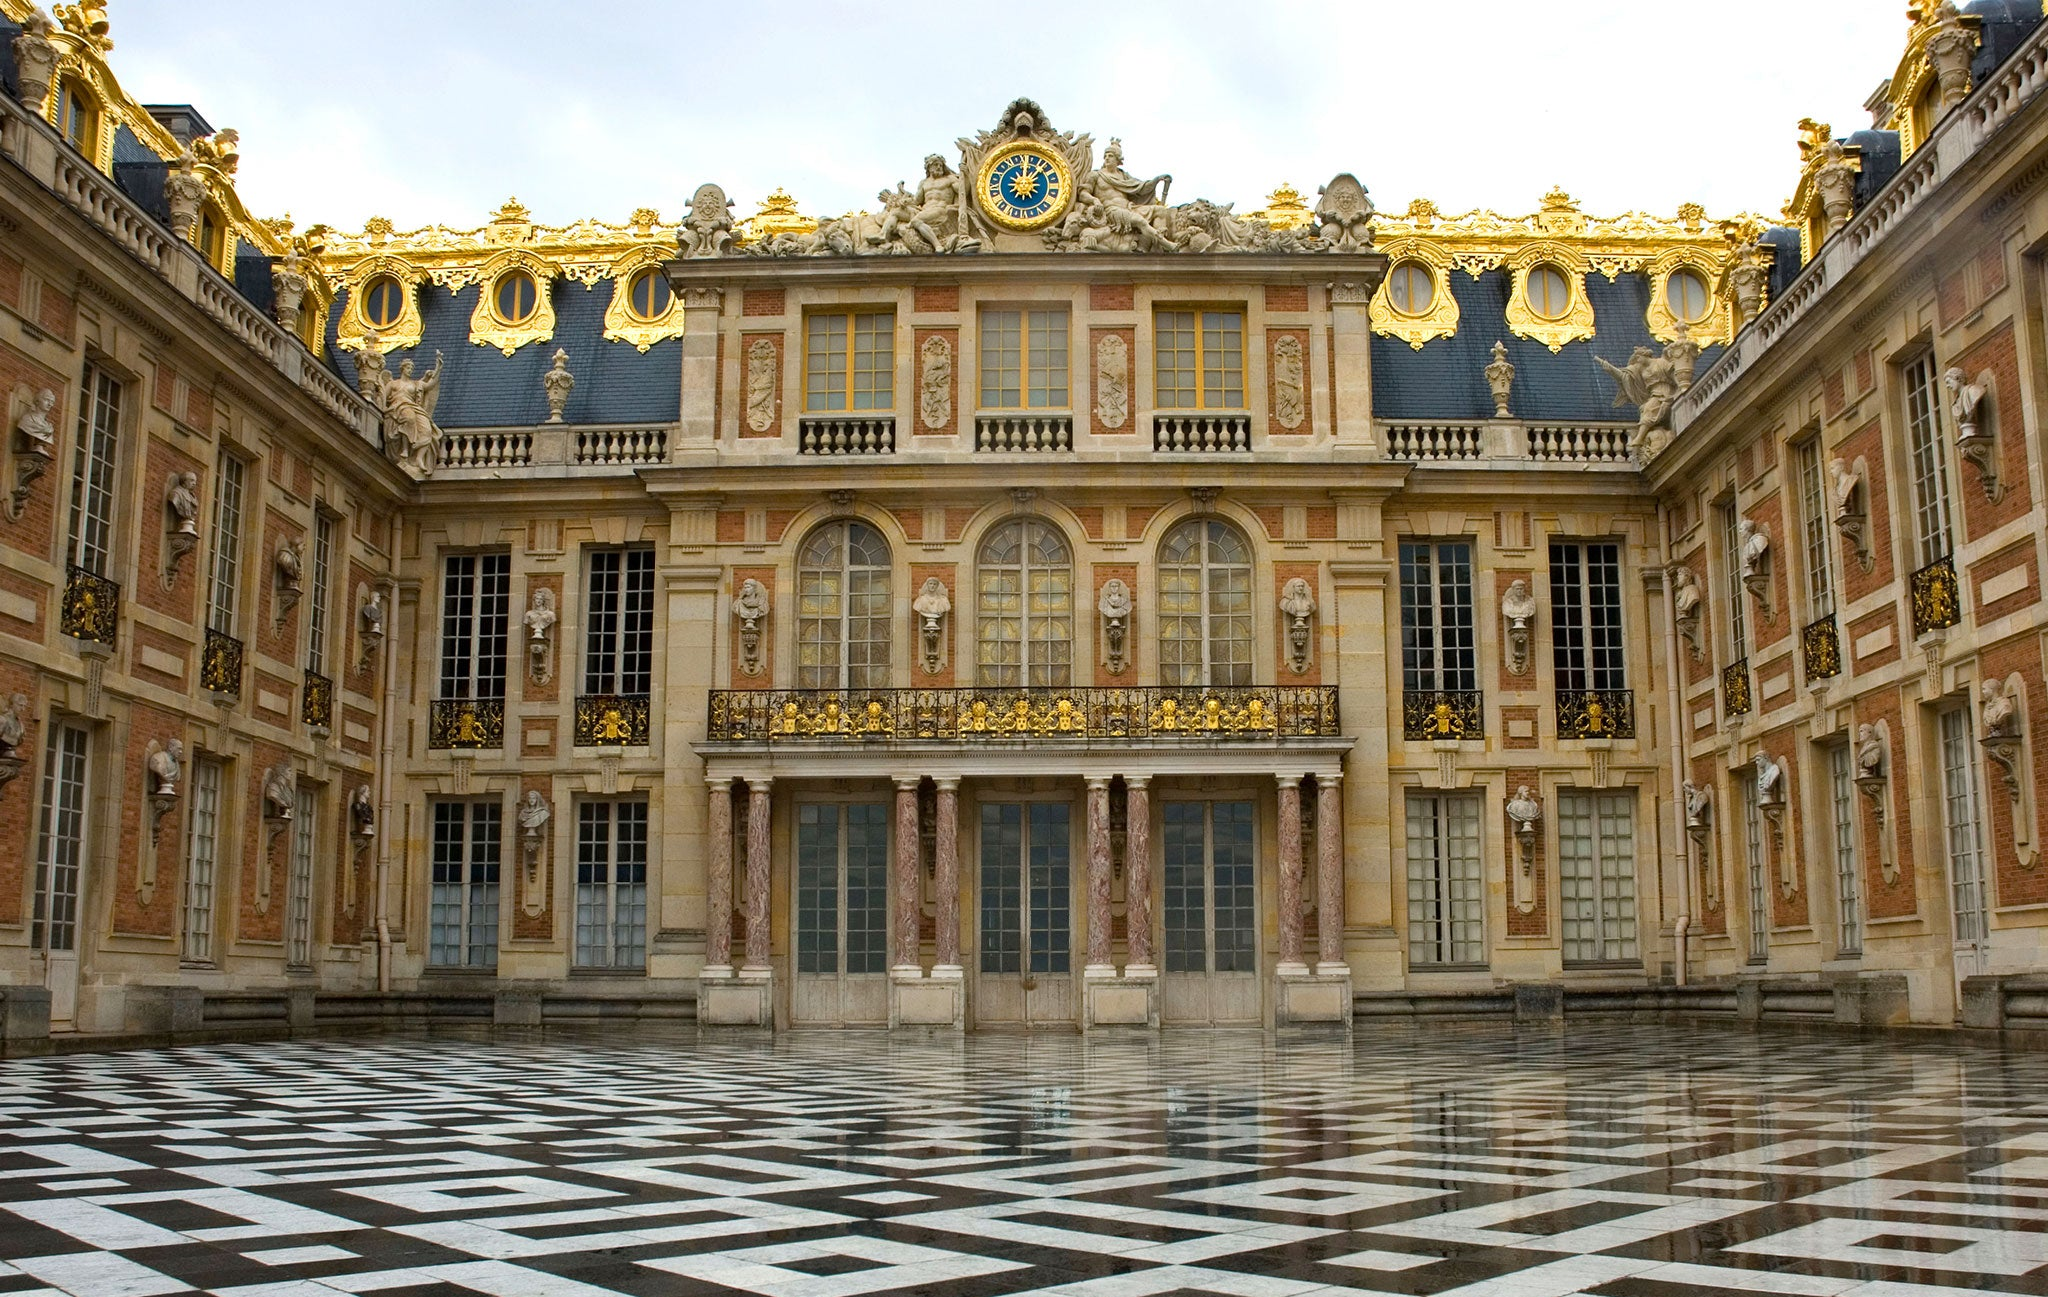 Allback Linseed Oil Paint on Château de Versailles